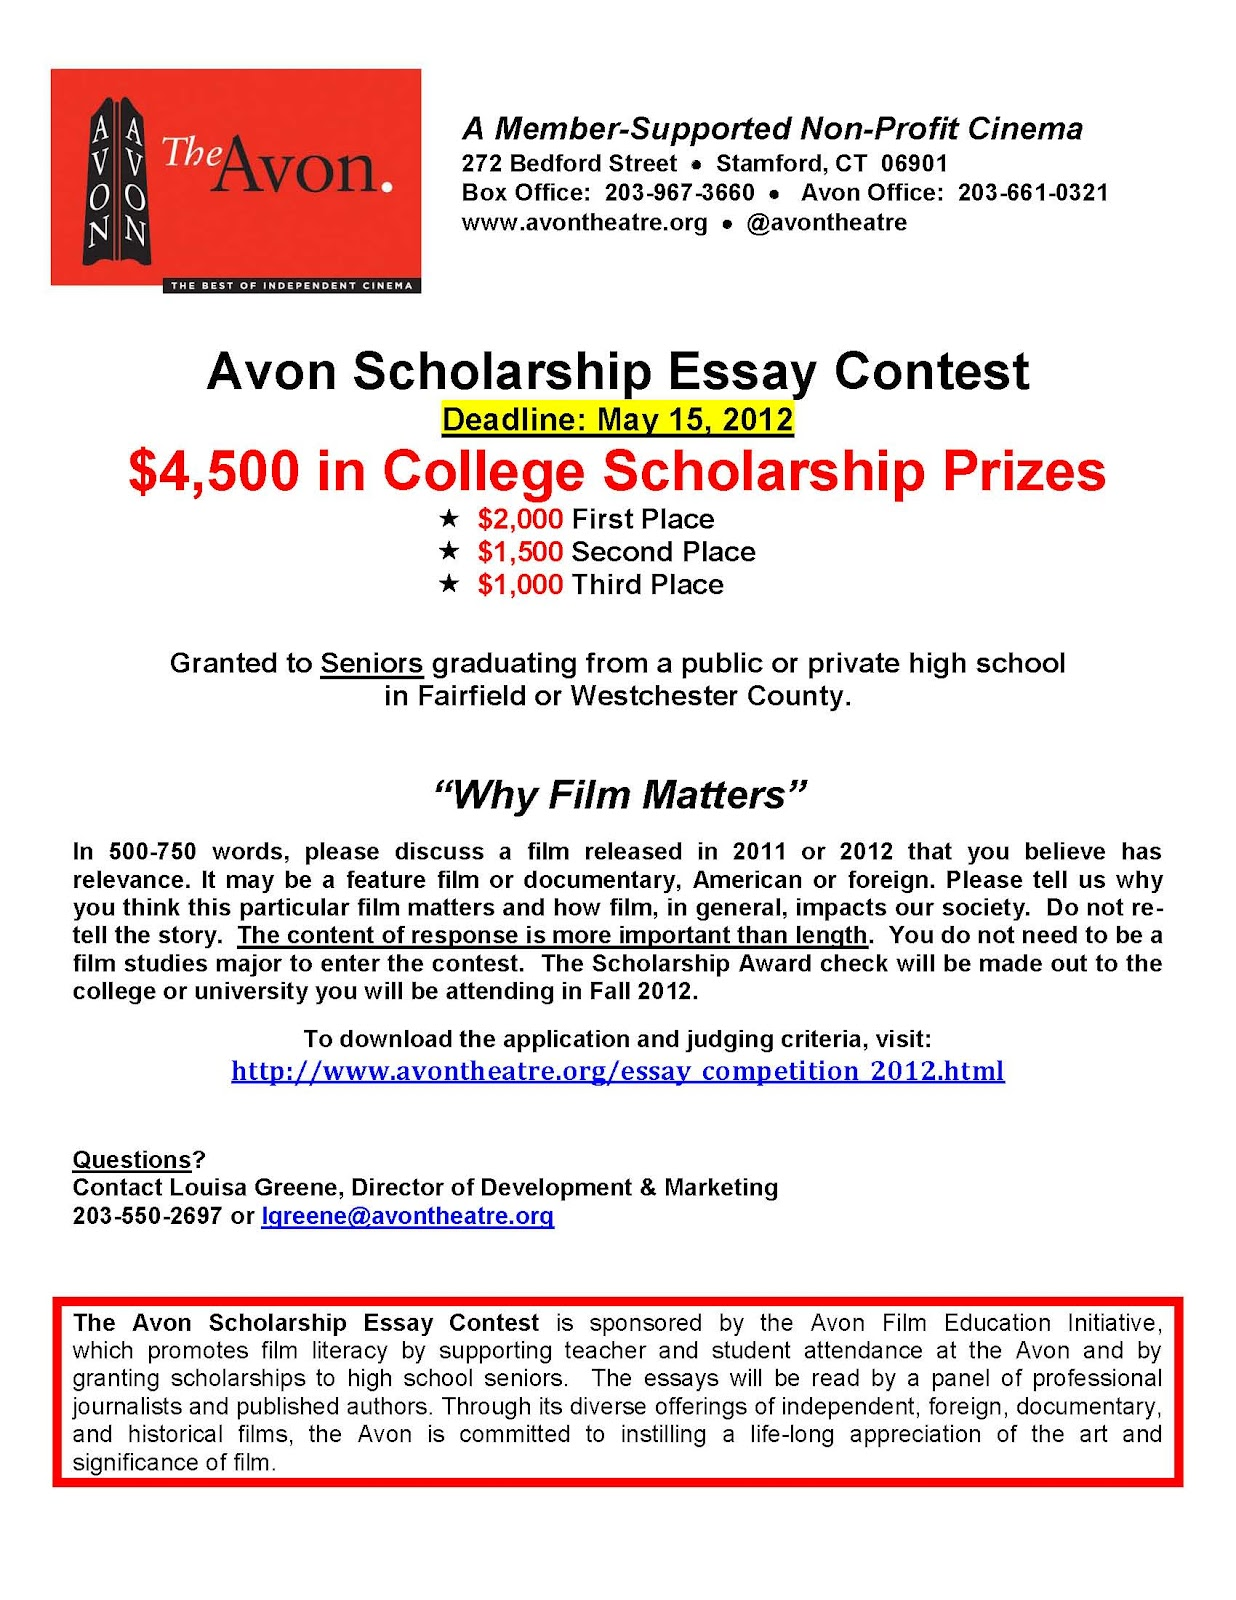 002 Essay Example No Scholarships College Scholarship Prowler Free For High School Seniors Avonscholarshipessaycontest2012 In Texas California Class Of Short Exceptional December 2018 Undergraduates Full